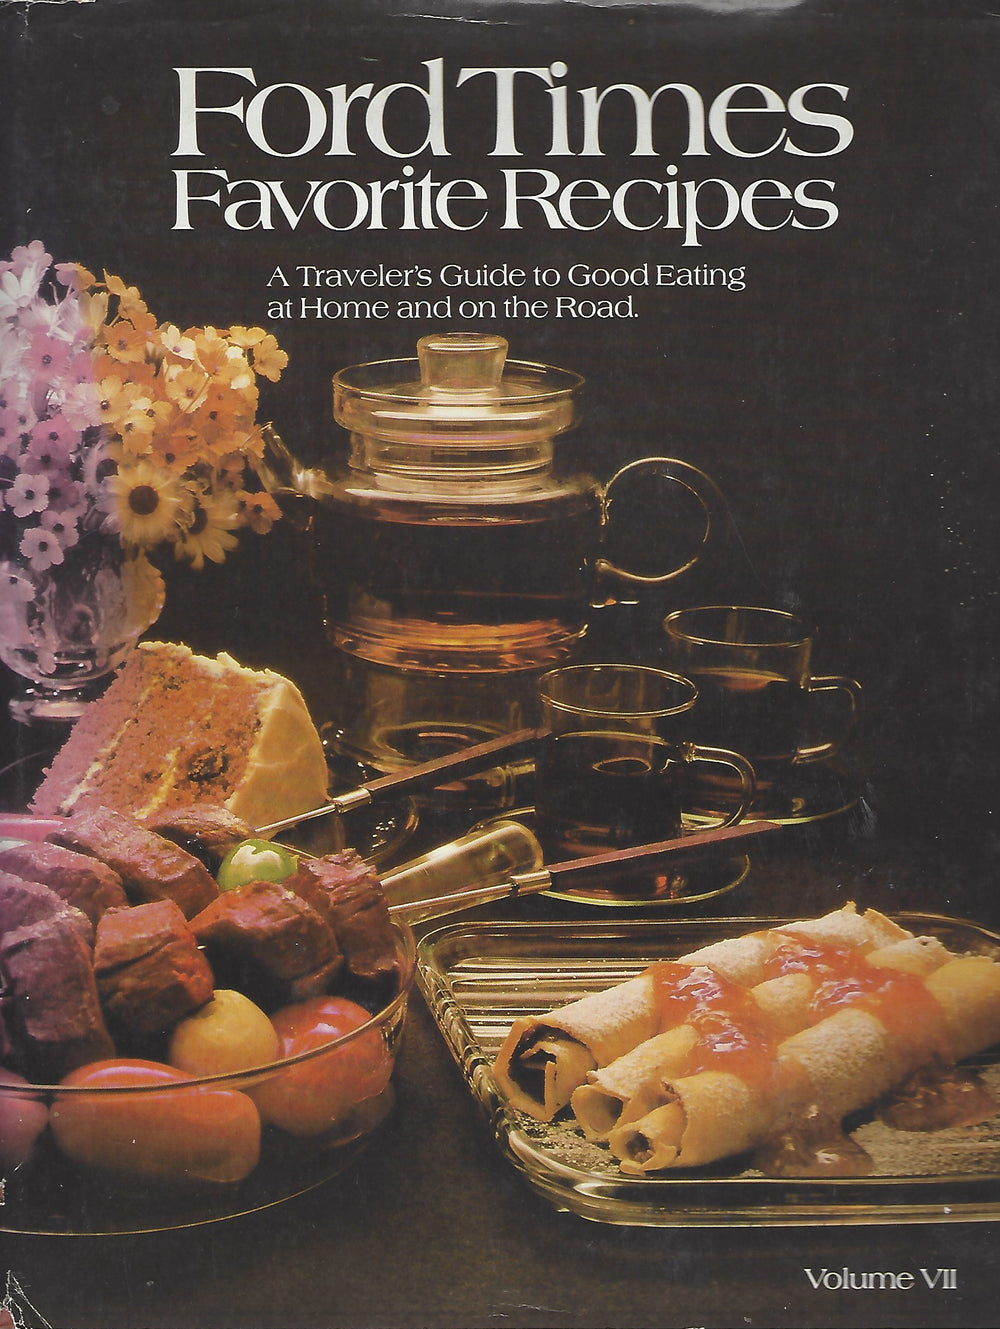 Ford Times Favorite Recipes   Volume VII    Hardcover (1979)  First Printing